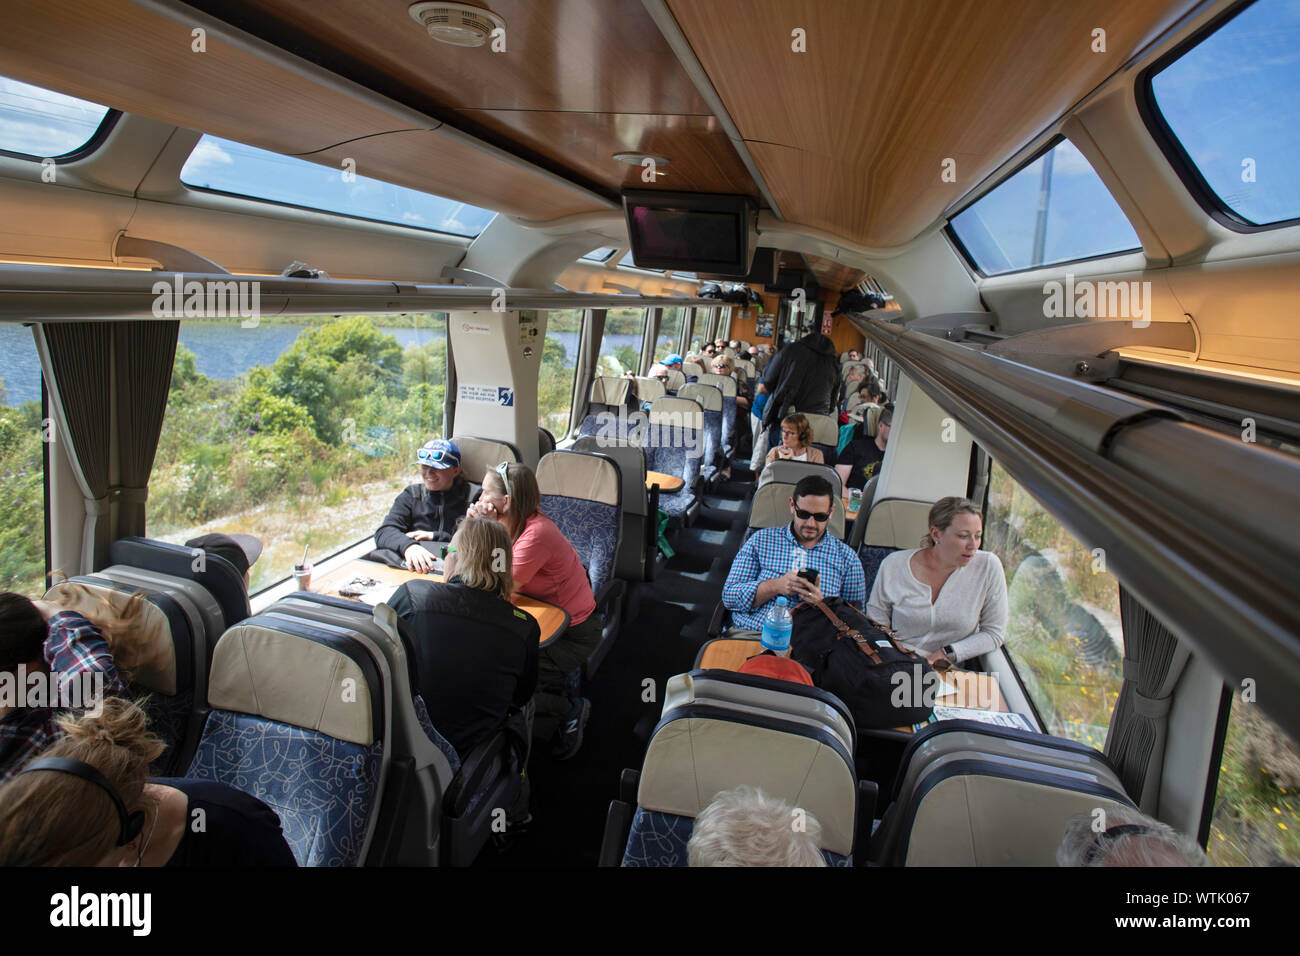 Picture by Tim Cuff - 4 & 5 January 2019 - Tranz Alpine train journey from Greymouth to Christchurch, and next day return, New Zealand: the carriages Stock Photo